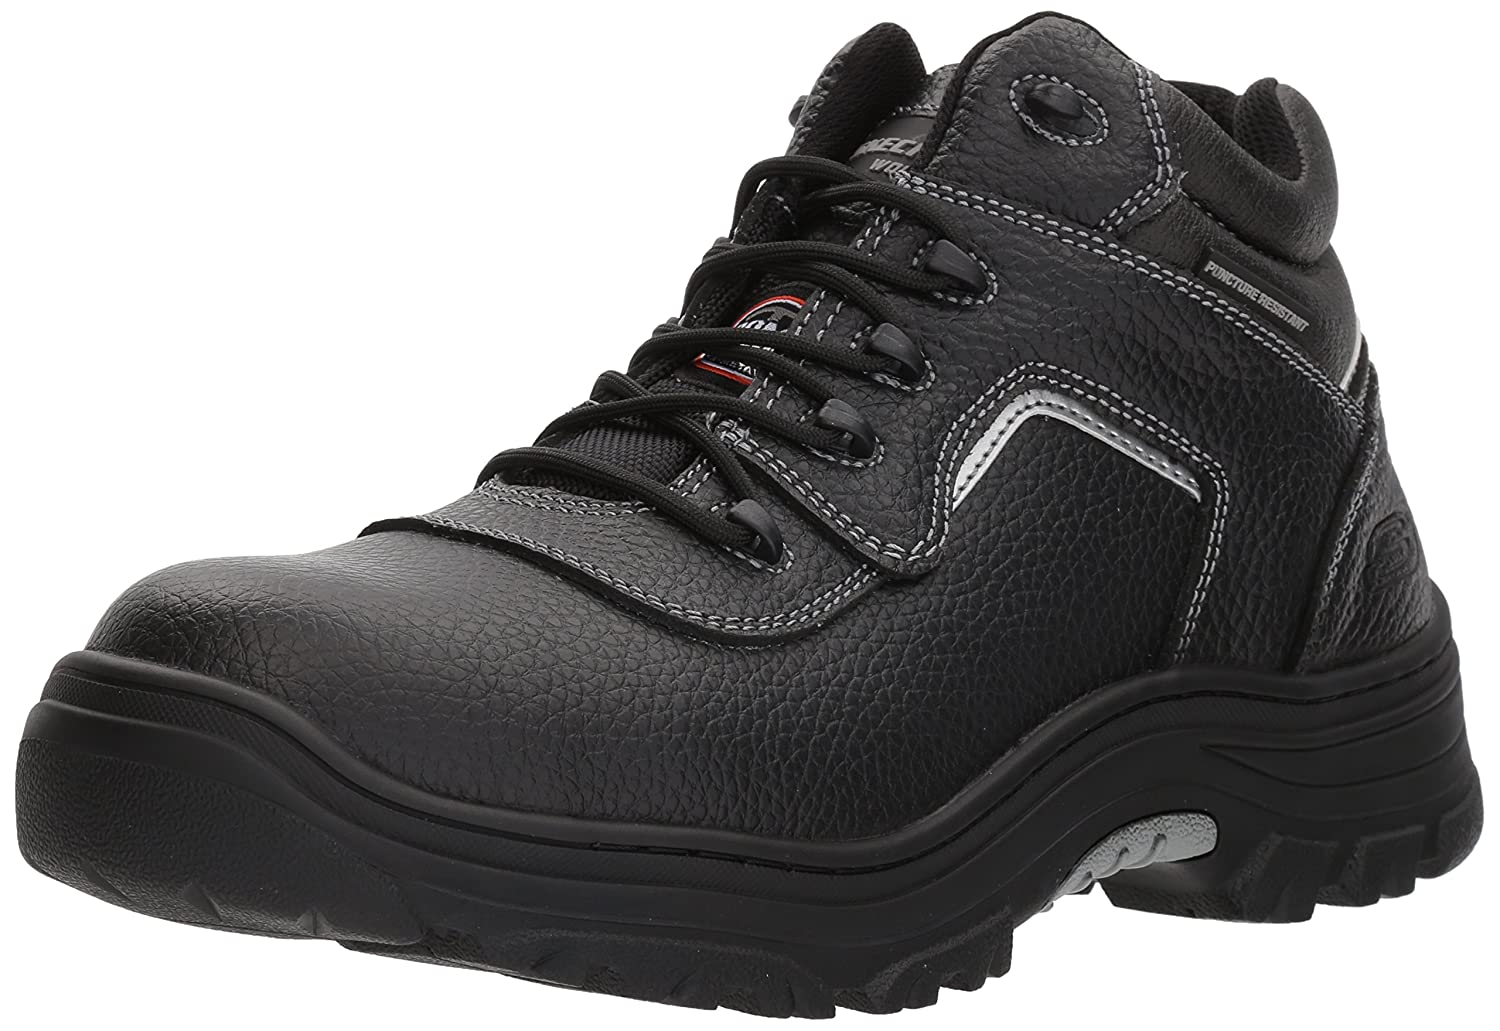 Skechers for Work メンズ Burgin-Sosder Black Embossed Leather 8 D(M) US 8 D(M) USBlack Embossed Leather B073WGRXP6